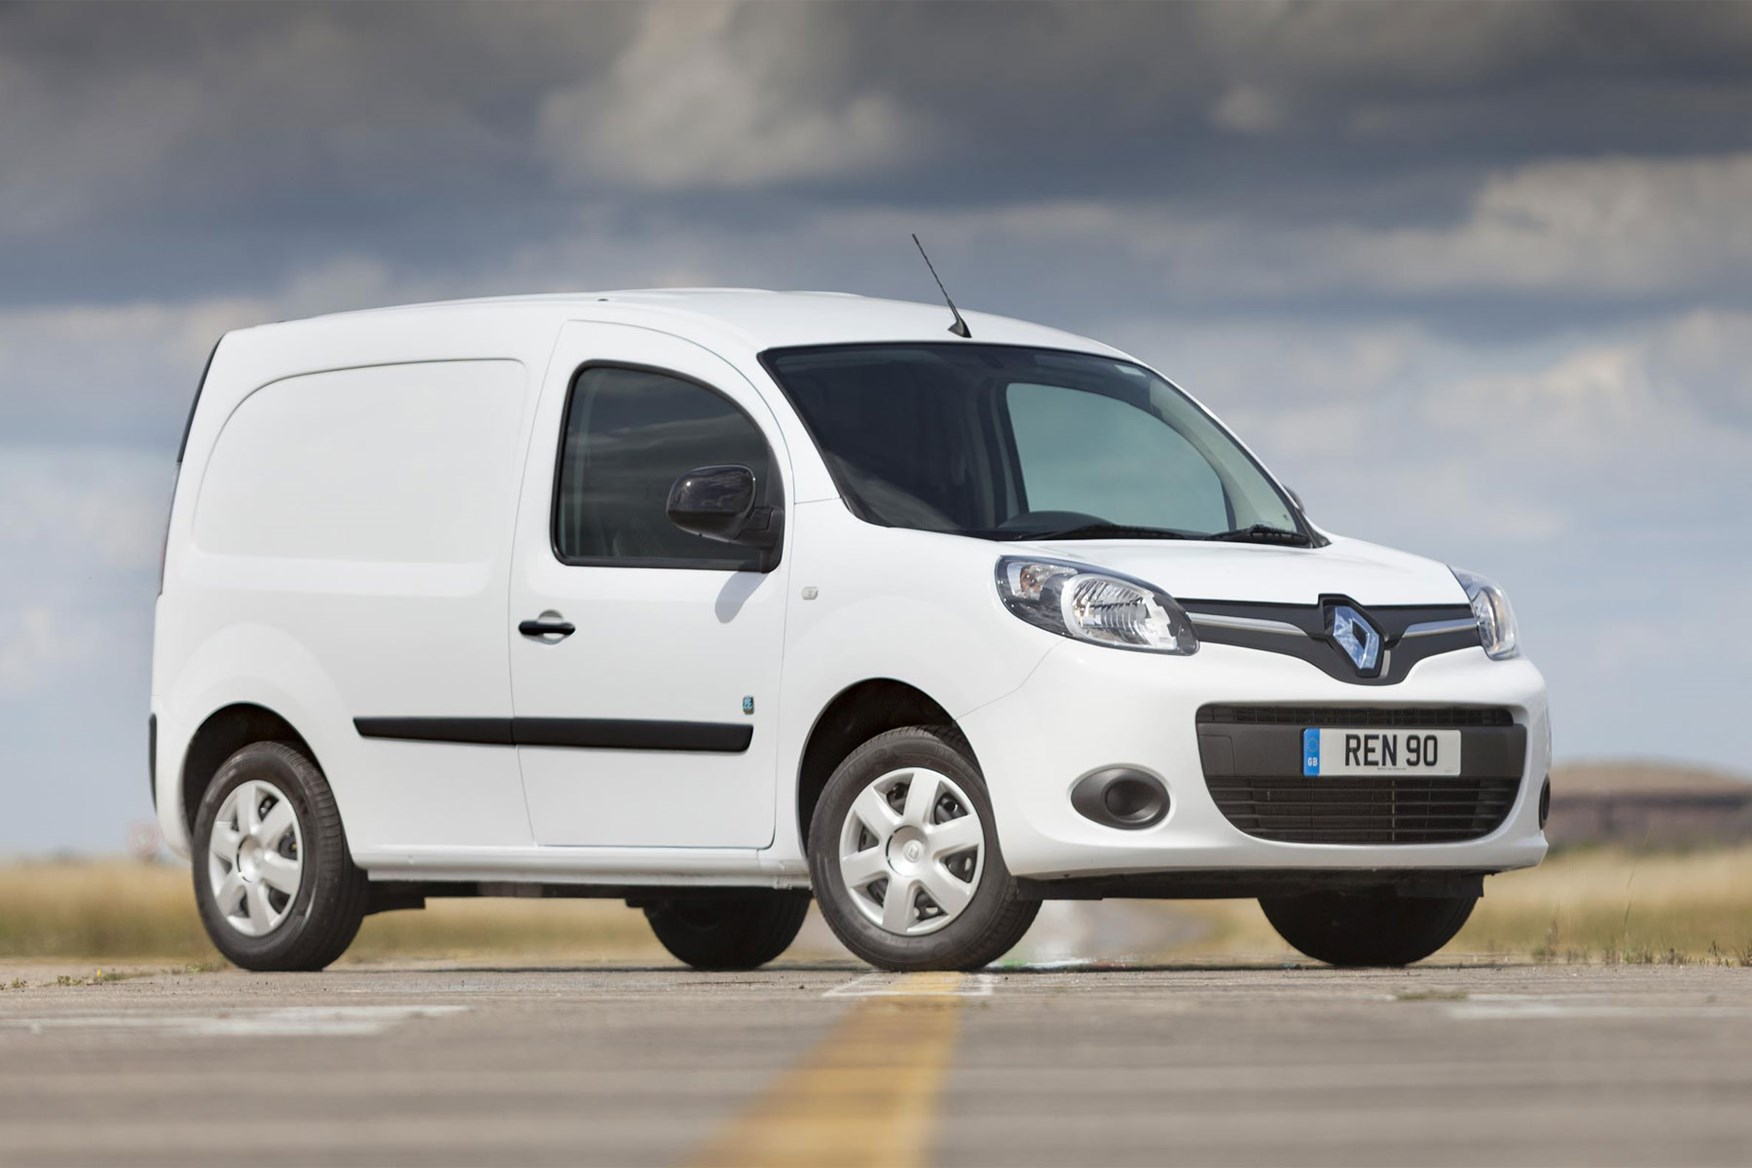 156b0c3d88 Renault Kangoo - where does it rank among the best small vans